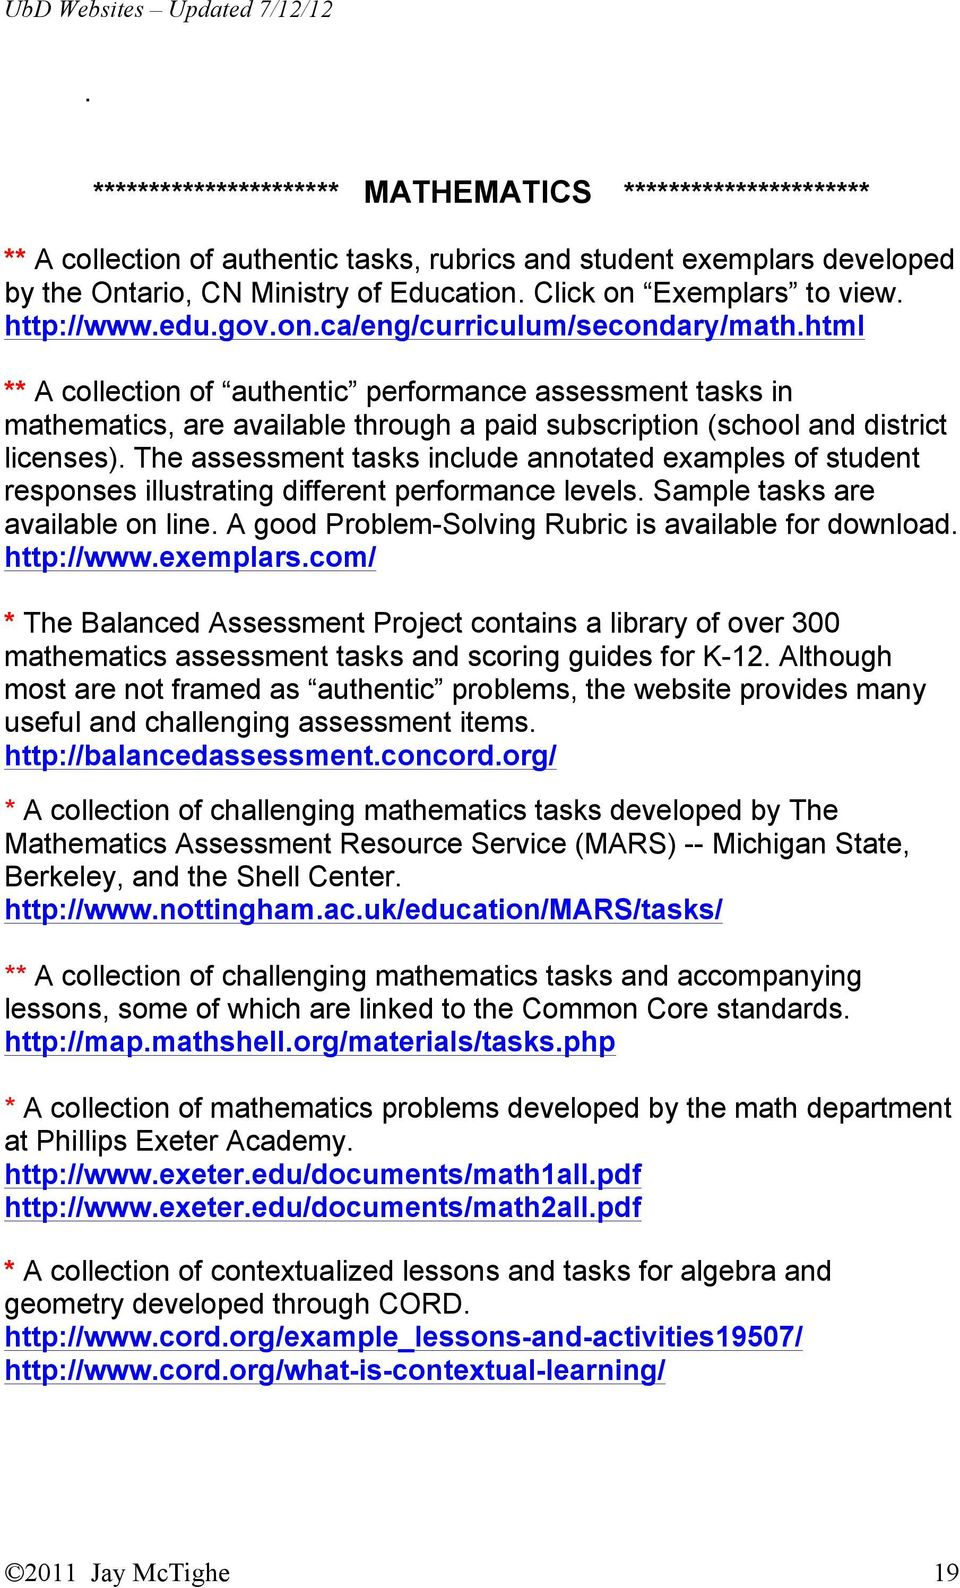 Envision Geometry Assessment Resources